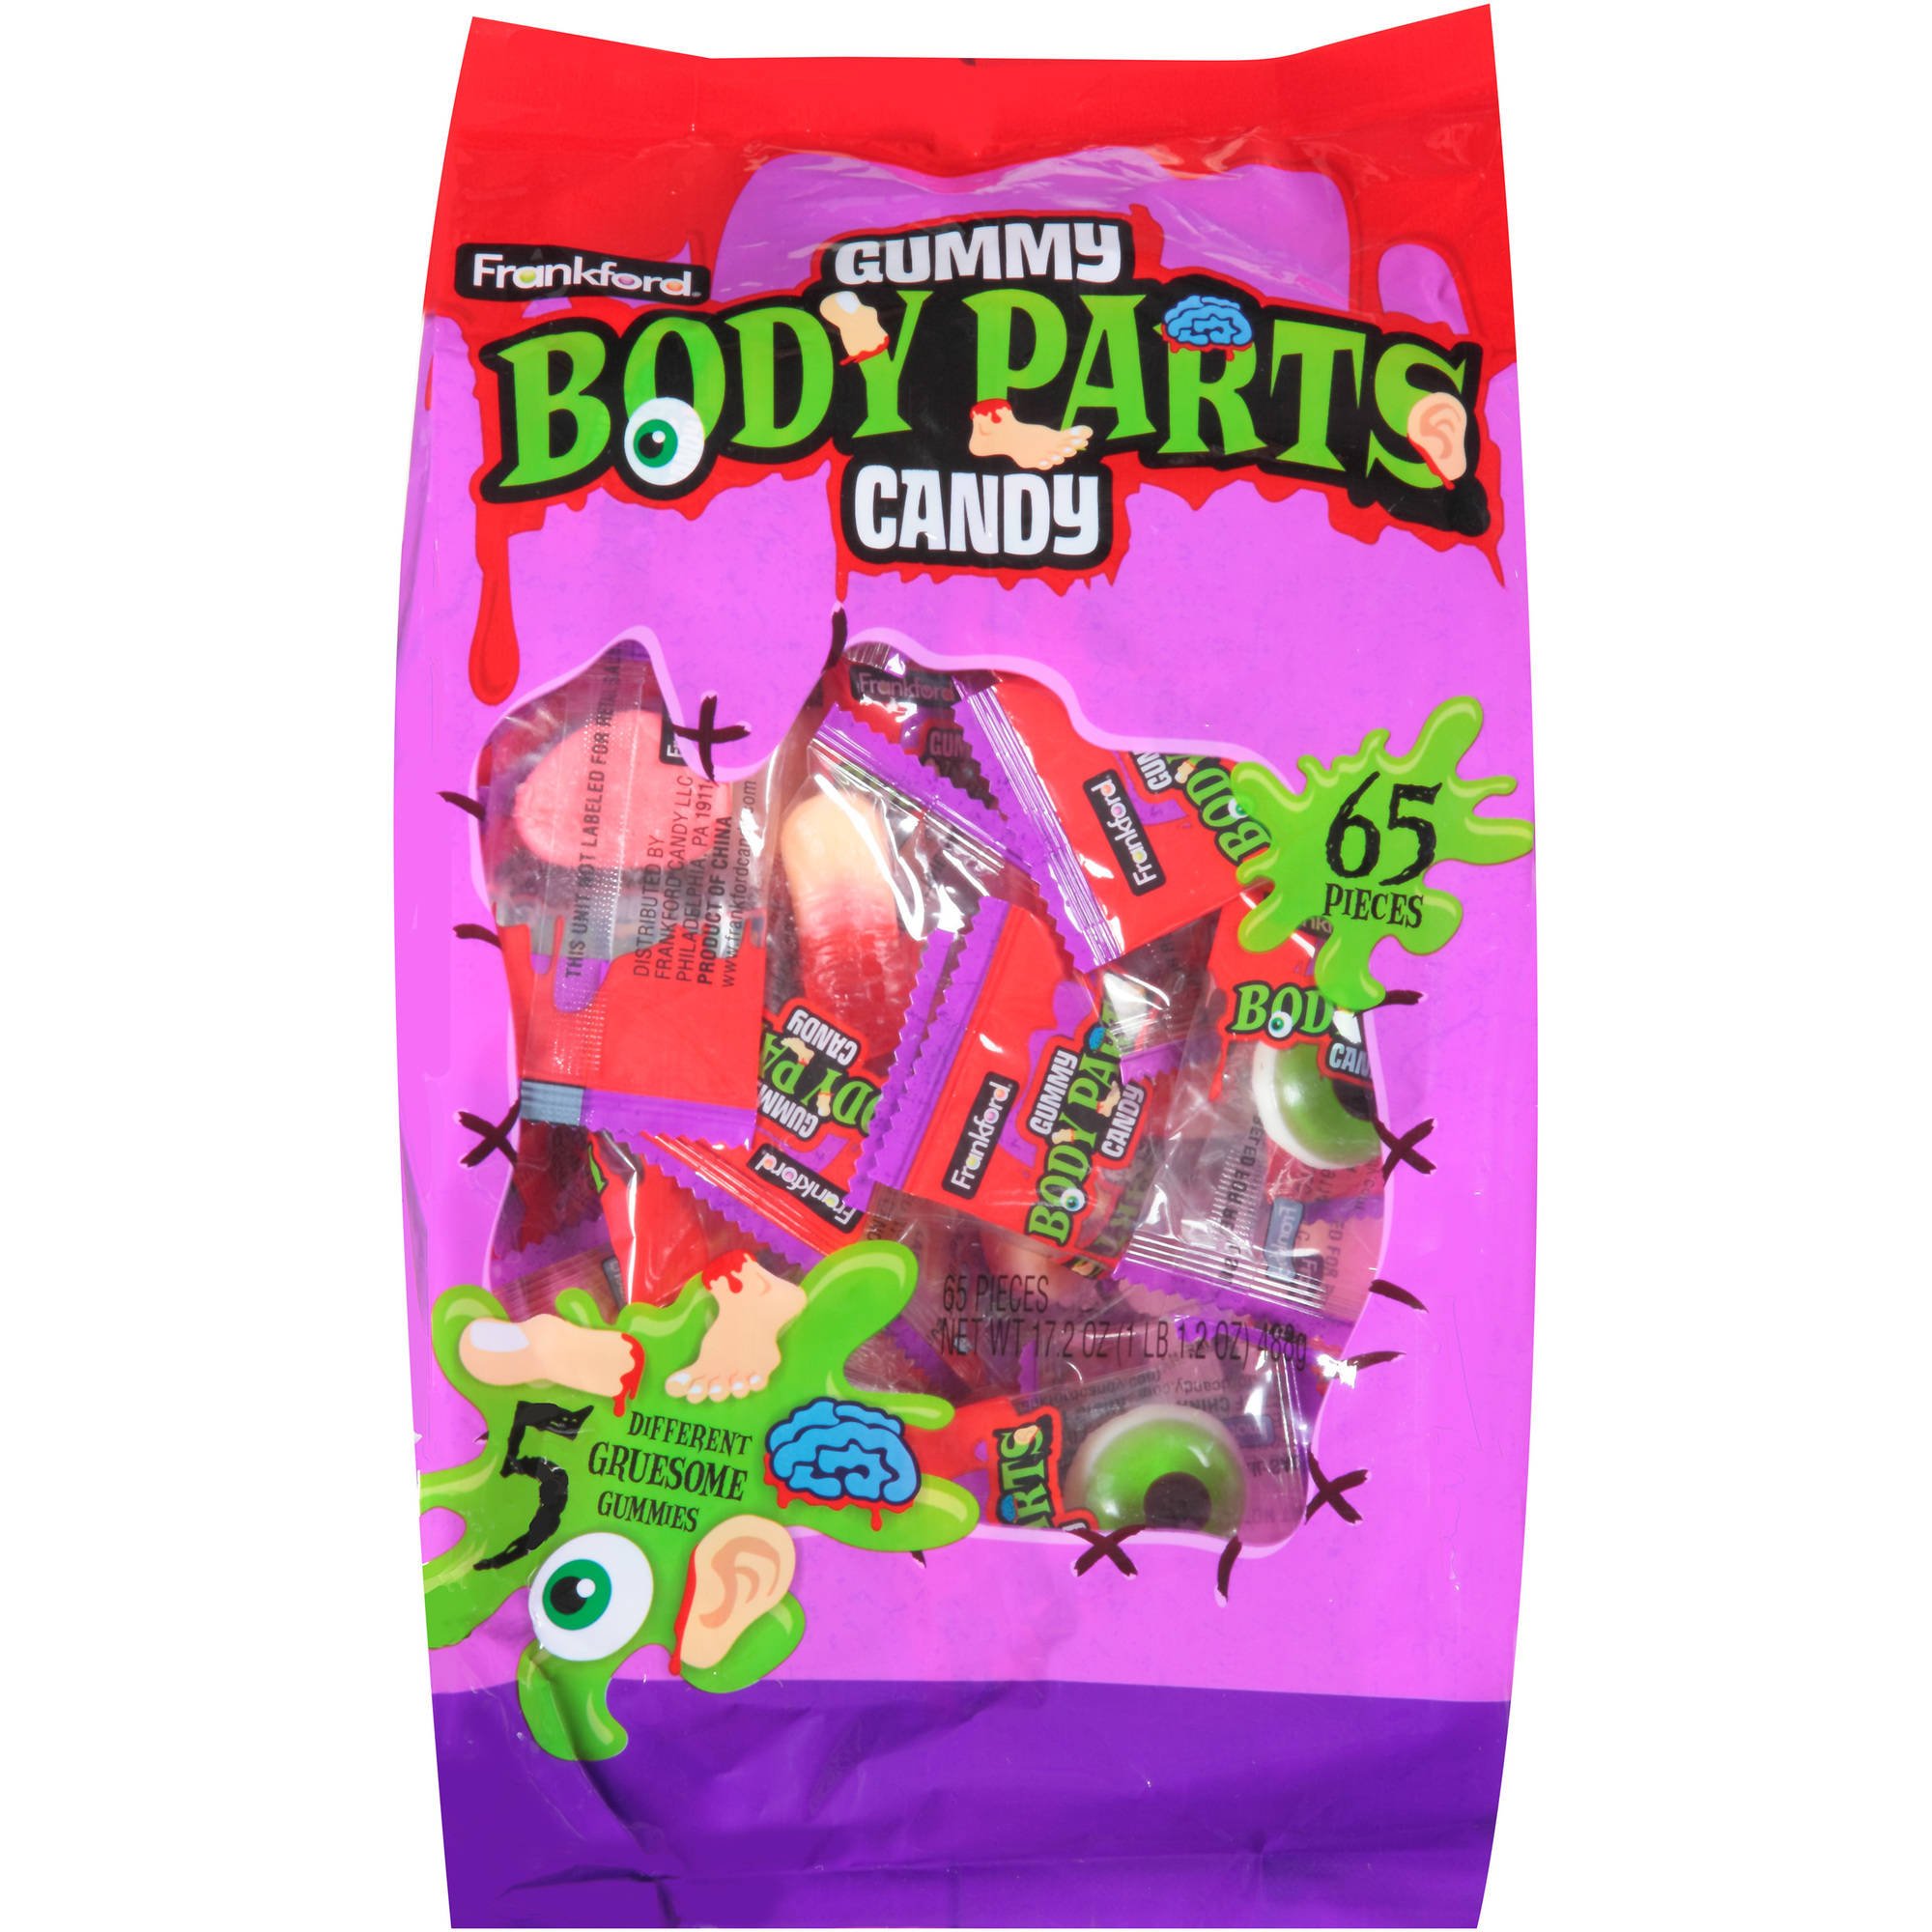 Frankford Gummy Body Parts Halloween Candy, 65 count, 17.2 oz by